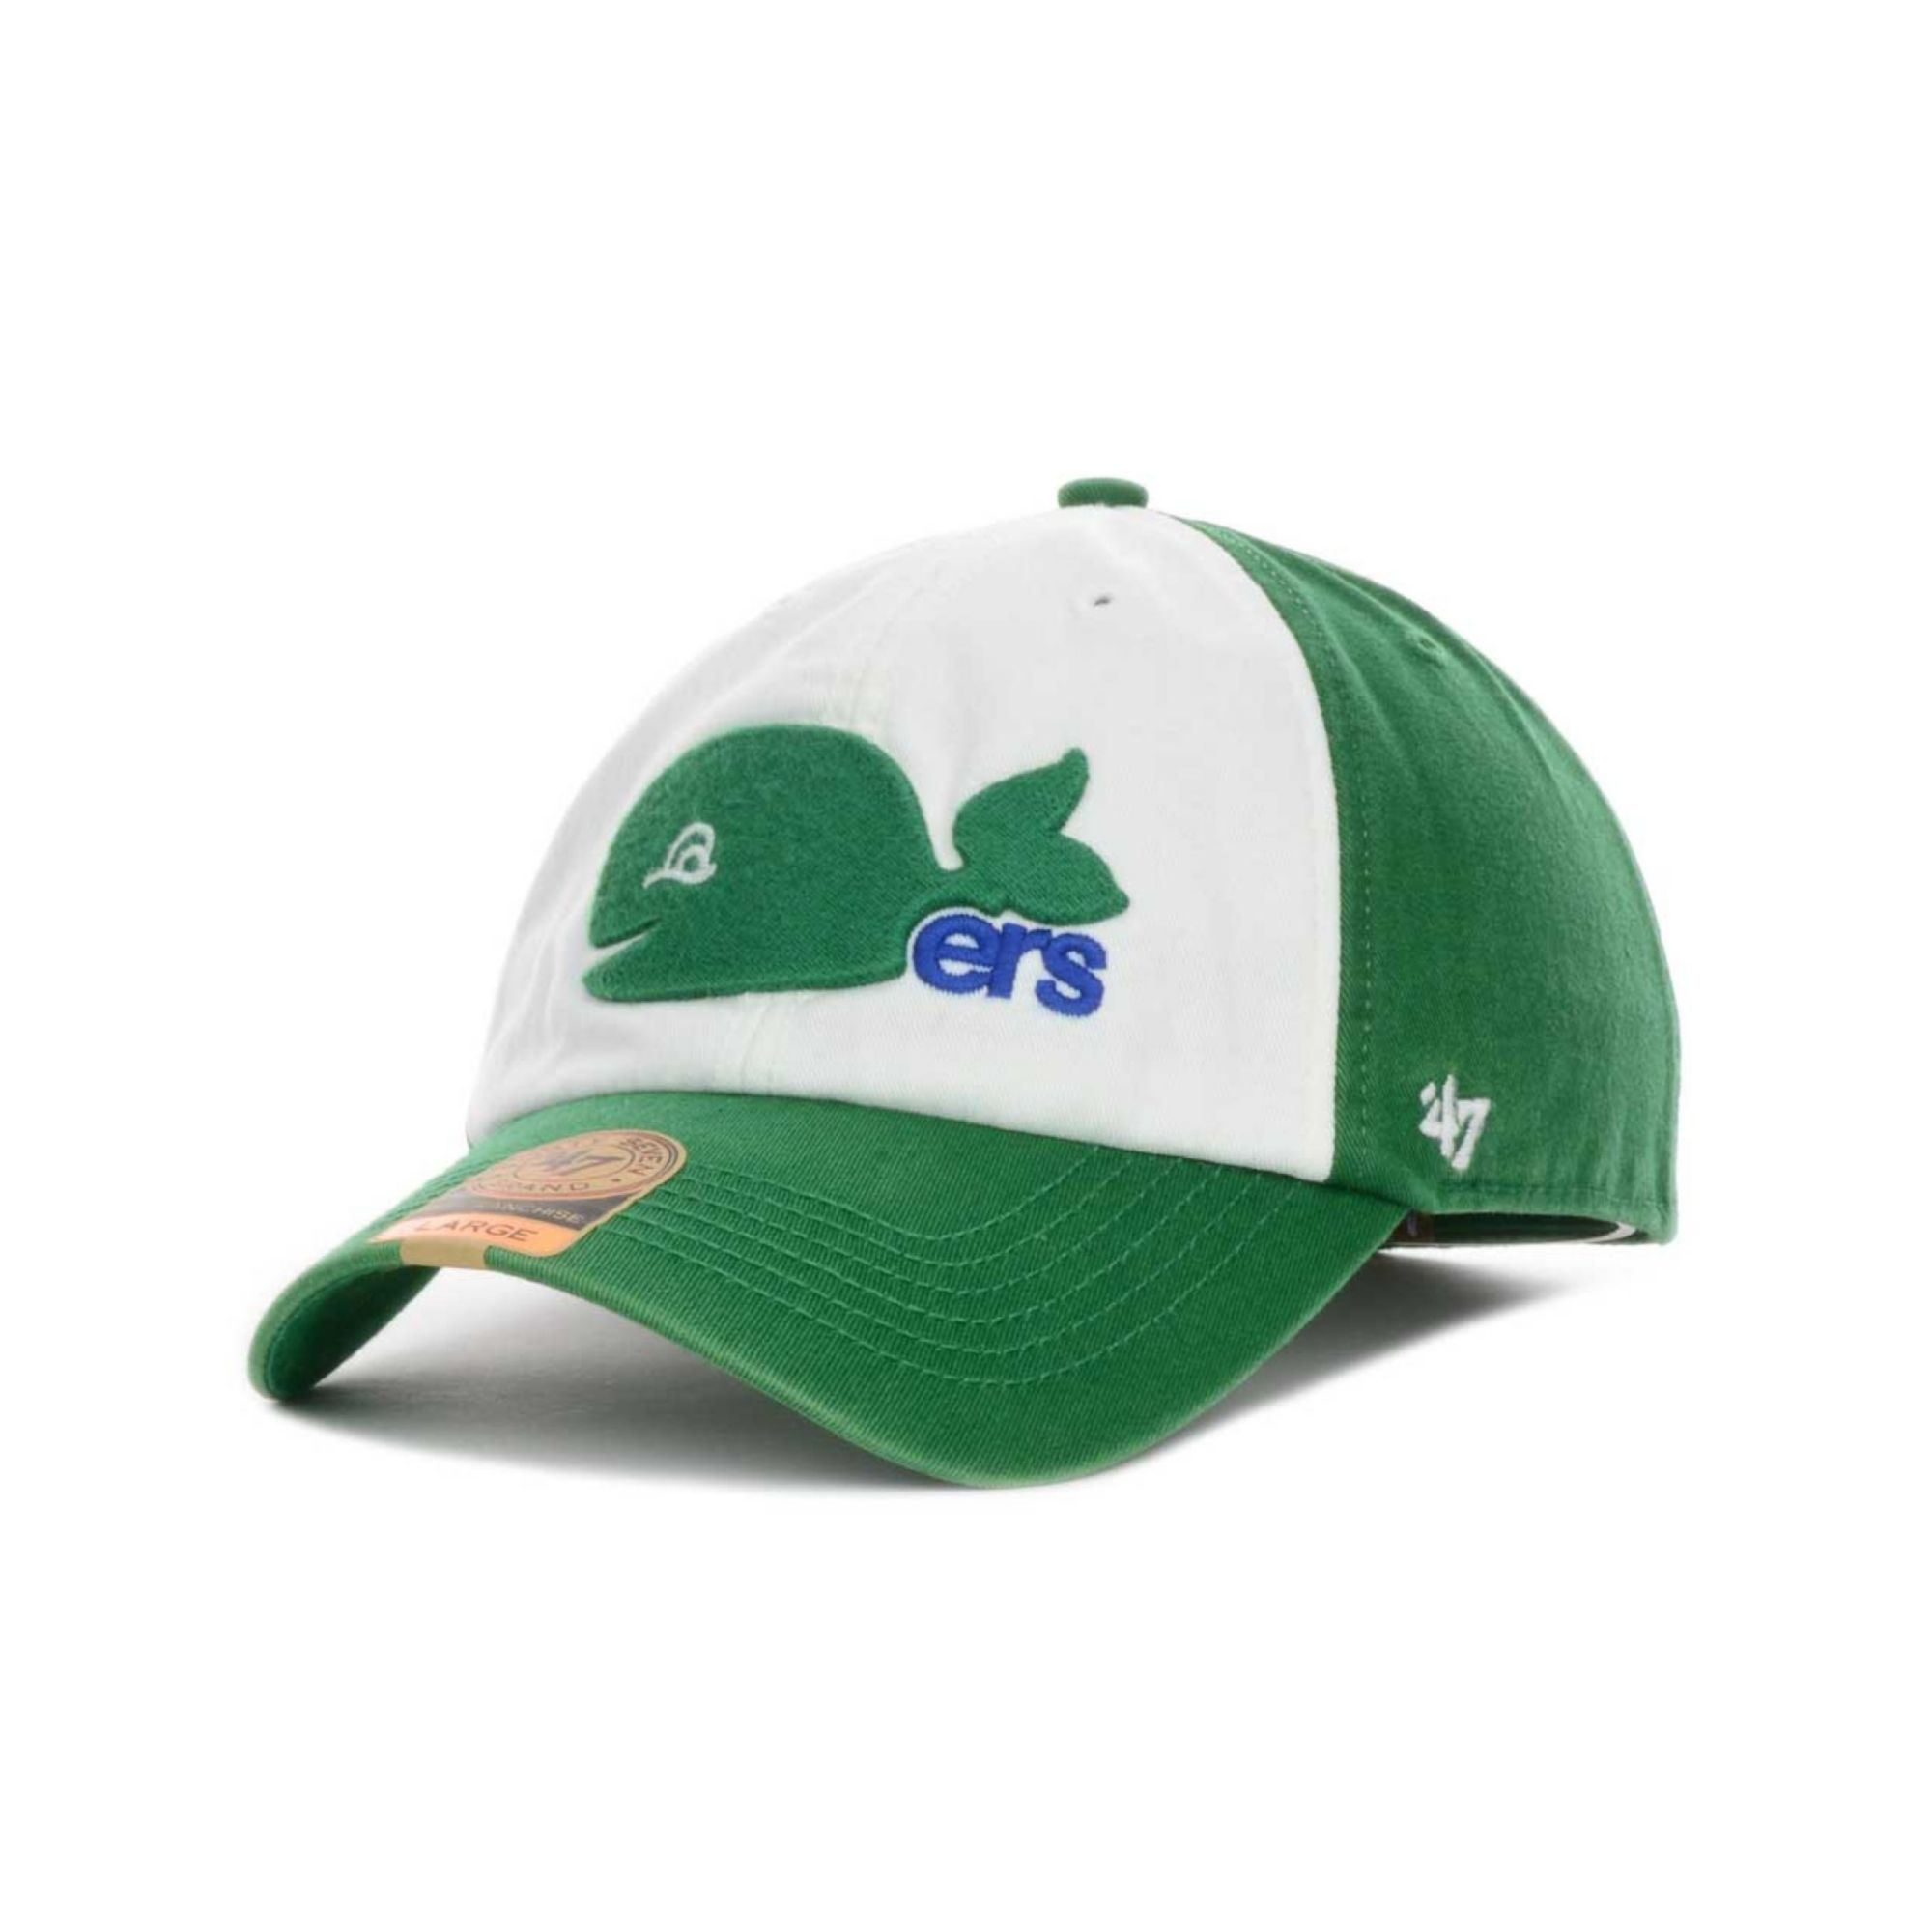 ... huge discount Lyst - 47 Brand Hartford Whalers Hof Fanchise Cap in  Green f 3f52d 9ec95 8d2ec41f9